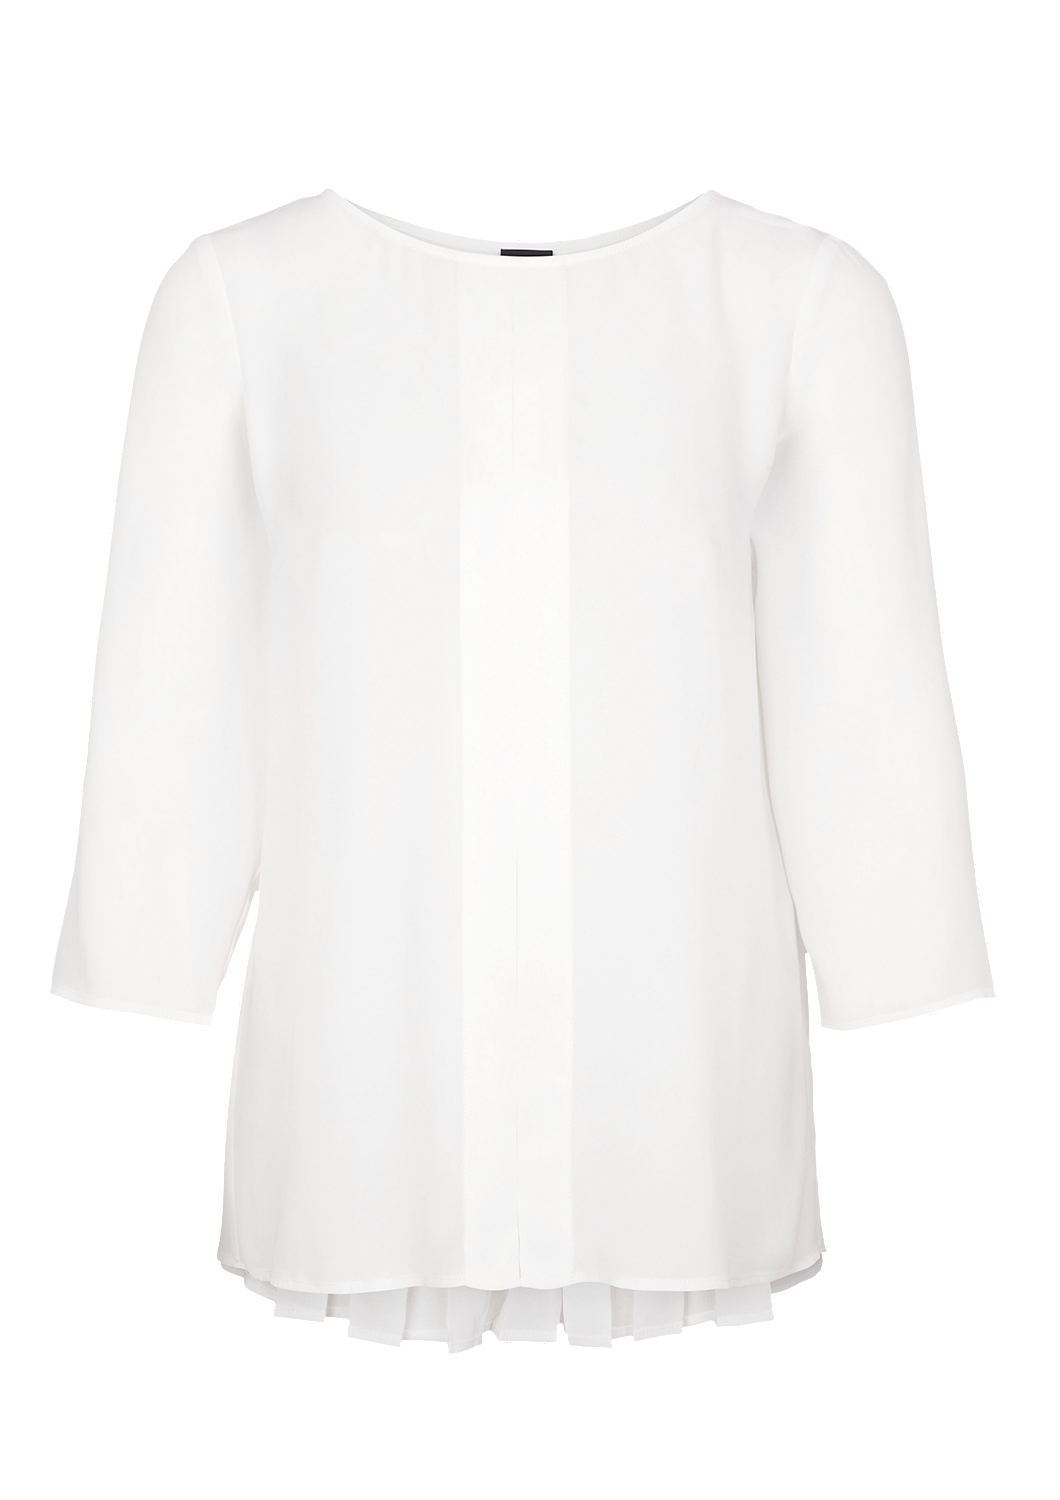 Witte dames blouse S. Oliver - 11.903.19.5308 0115